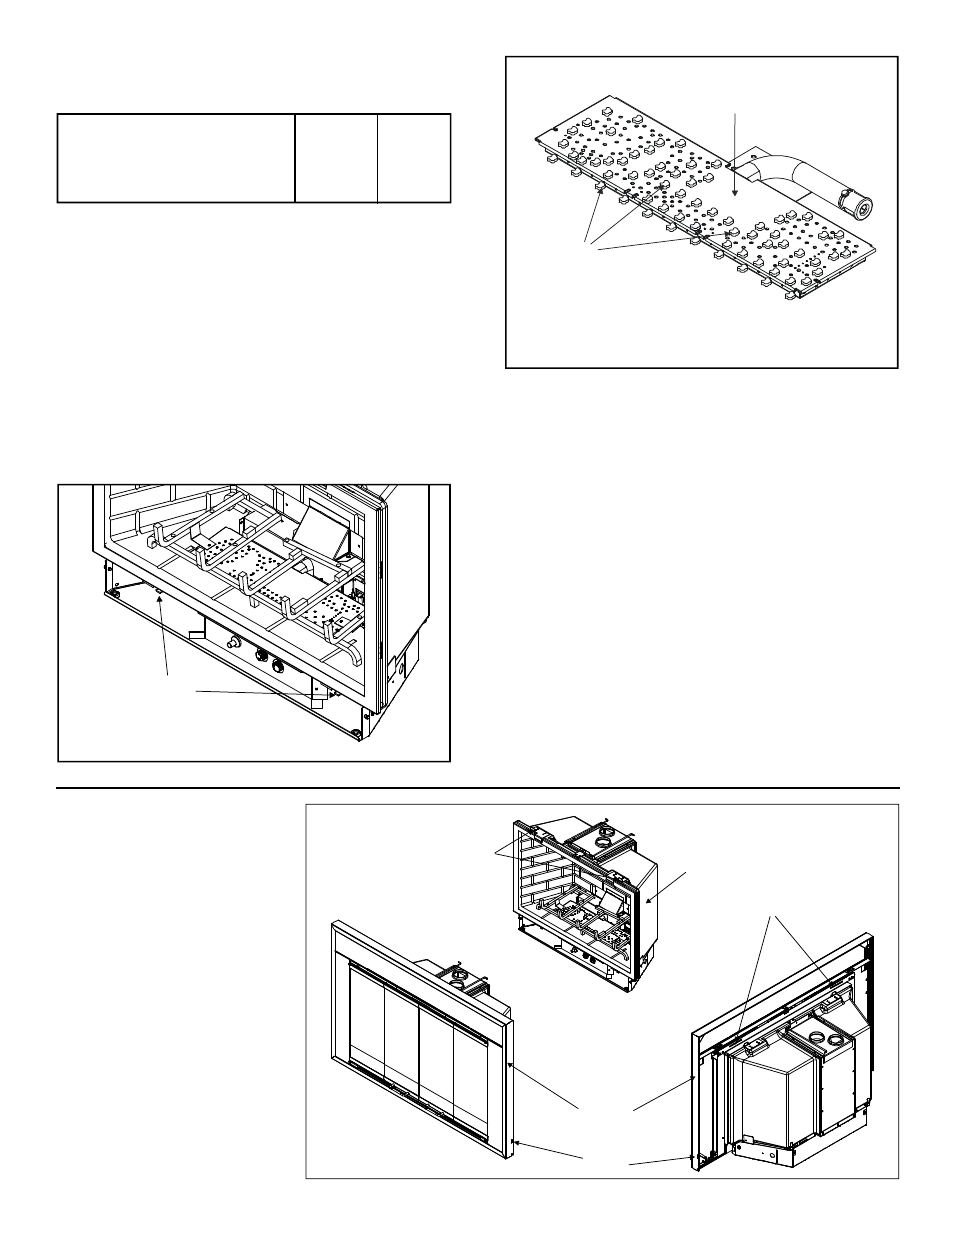 Step 8. installing trim surrounds | Heat & Glo Fireplace HEAT-N-GLO FB-IN User Manual | Page 21 / 23